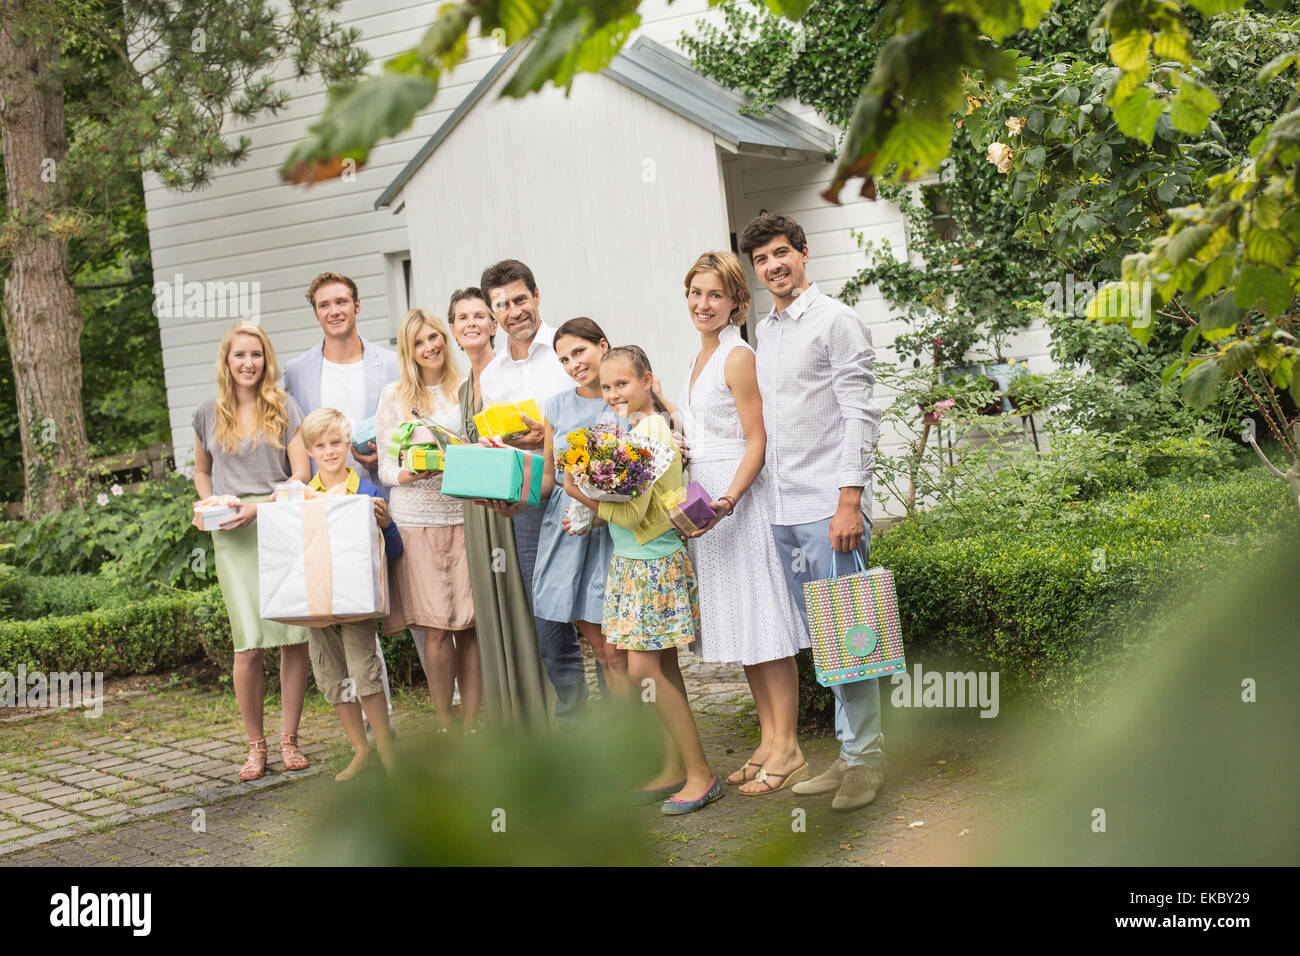 Portrait of three generation family in garden with birthday gifts - Stock Image